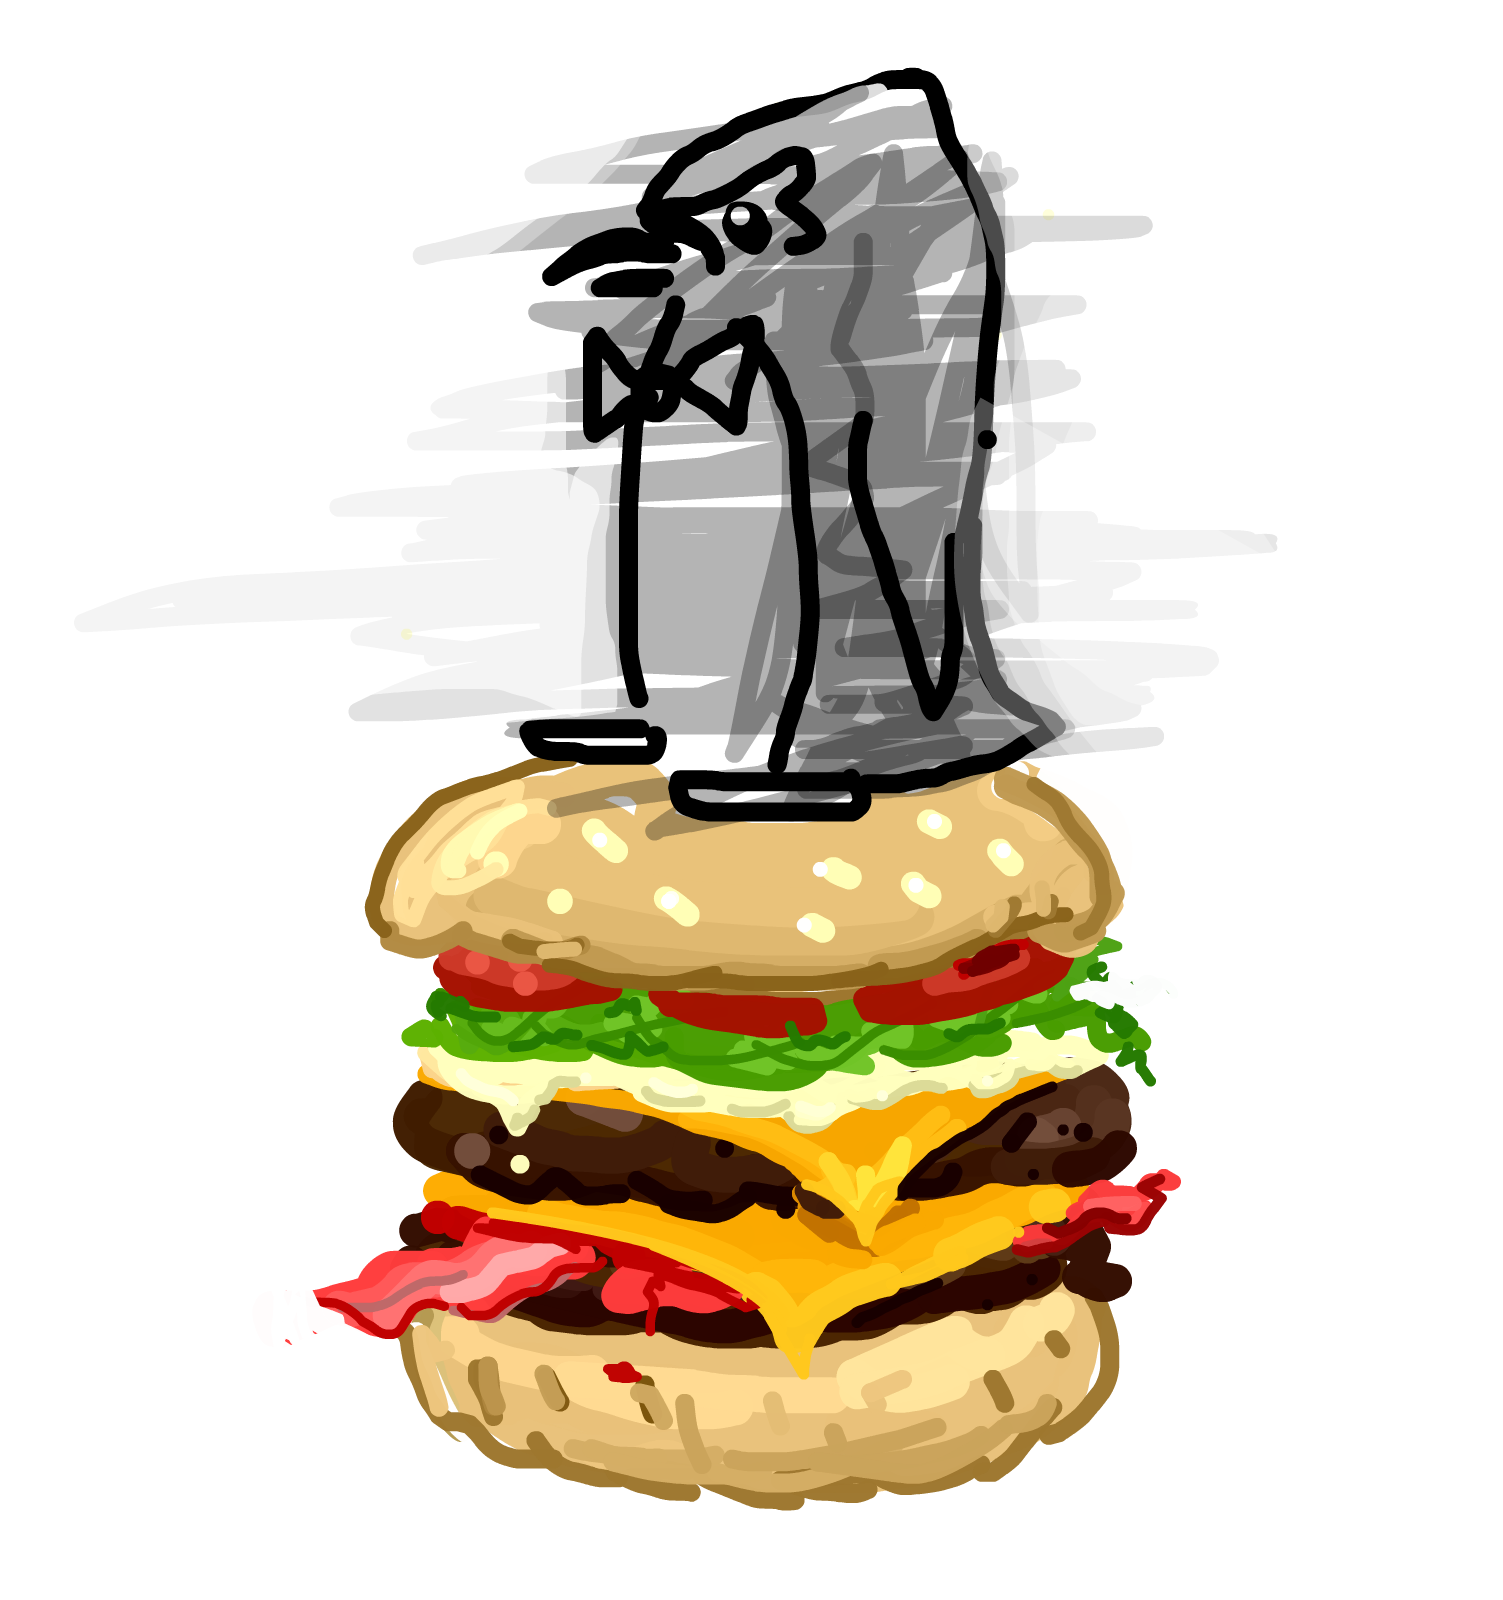 papachan loves burgers